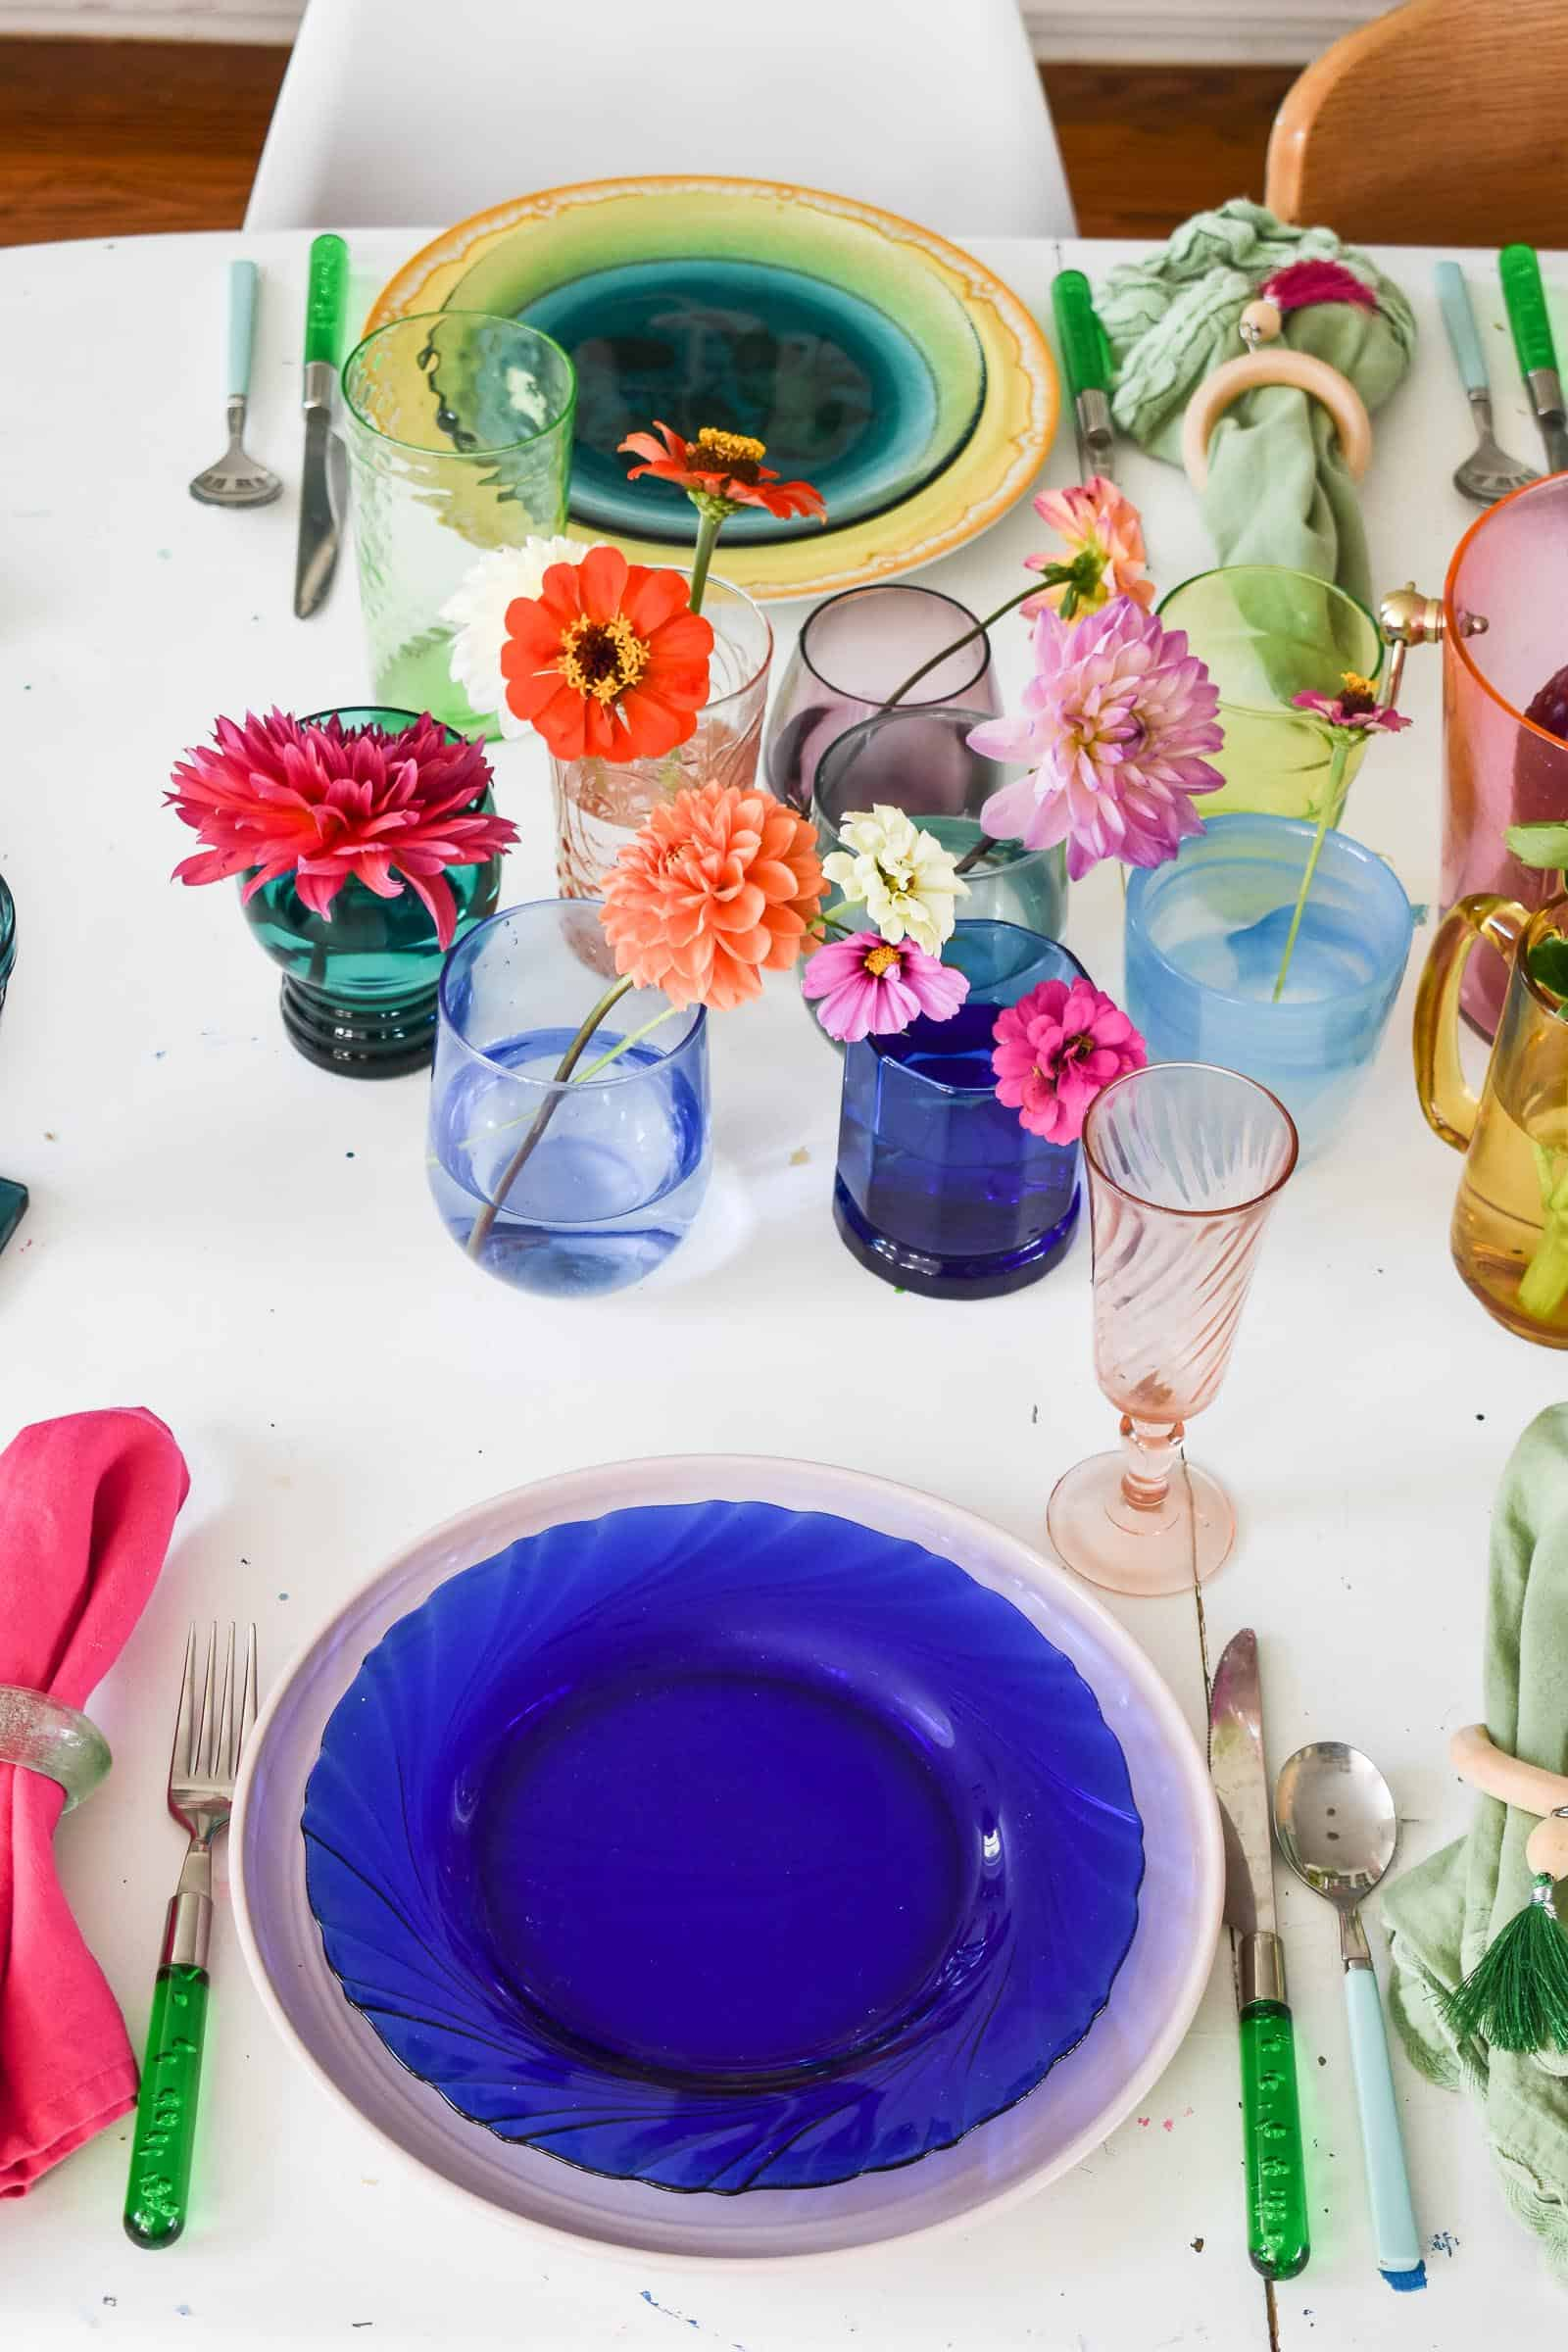 flowers in the middle of a colorful table